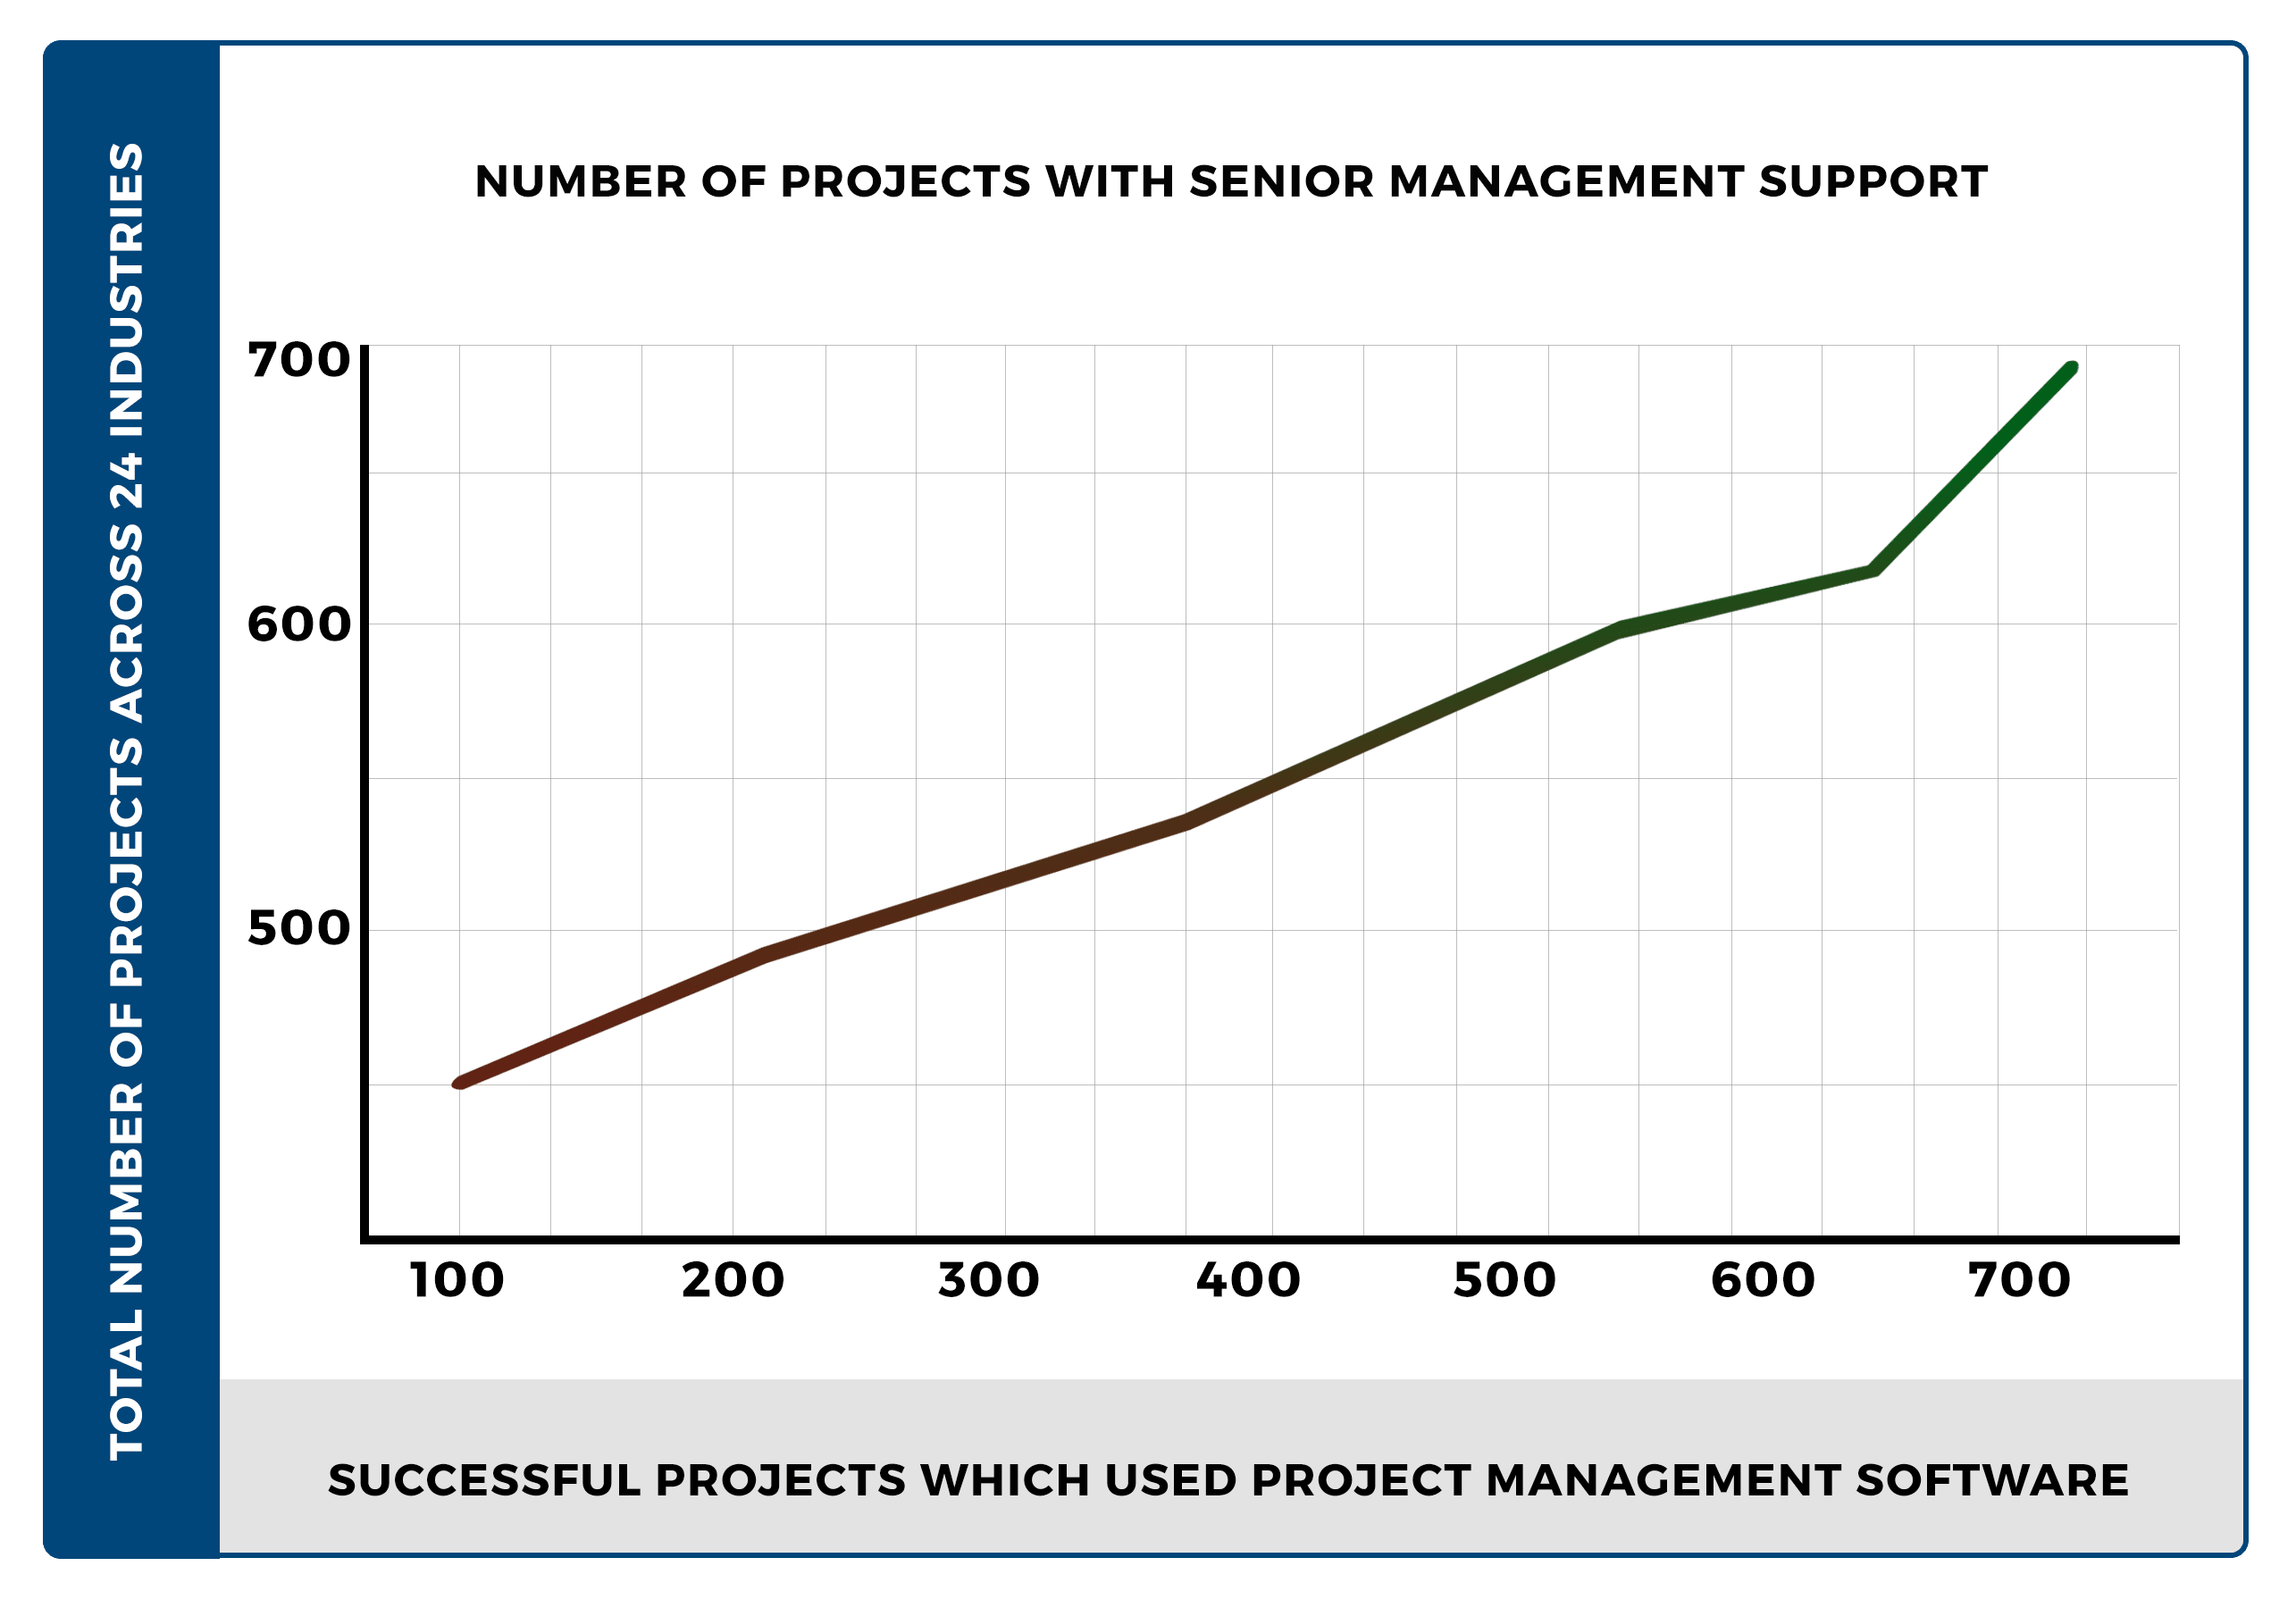 Top Management Support Correlation with Project Management Success